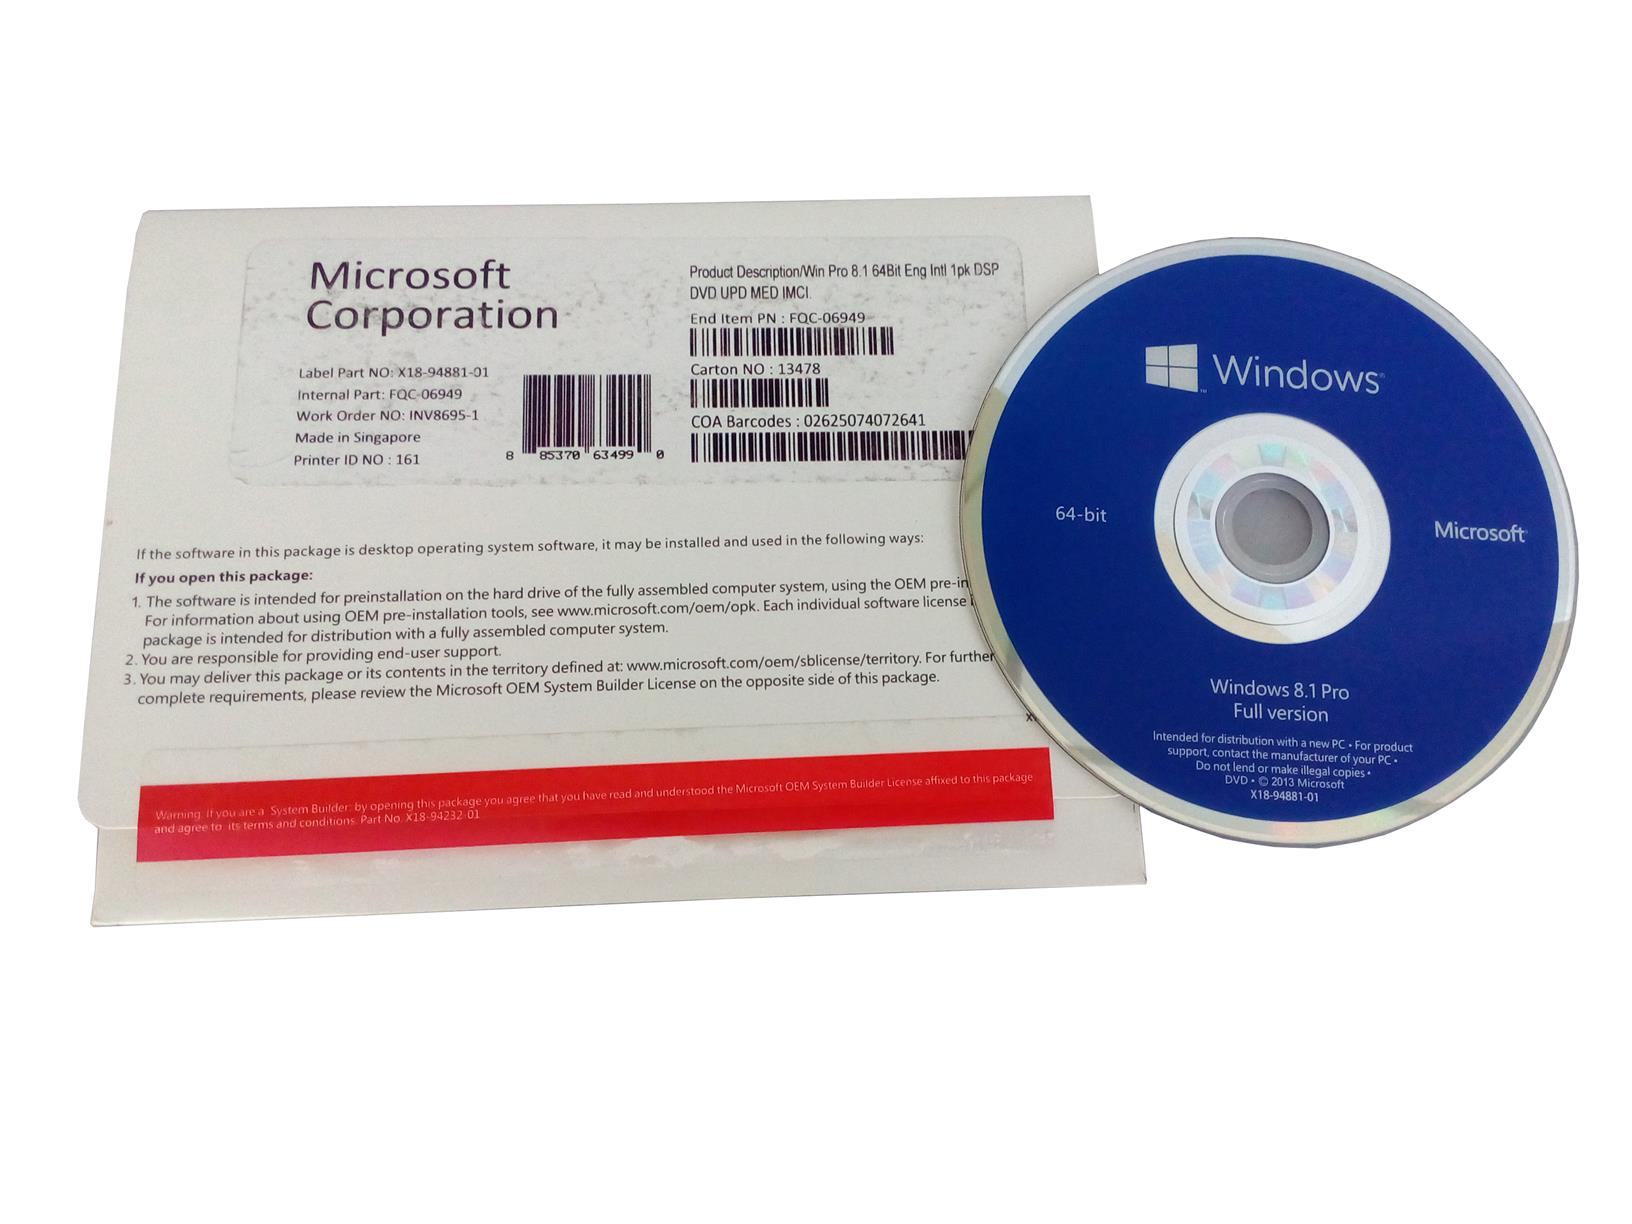 Microsoft Windows 8.1 Professional OEM pack (WITH CD & COA STICKER)